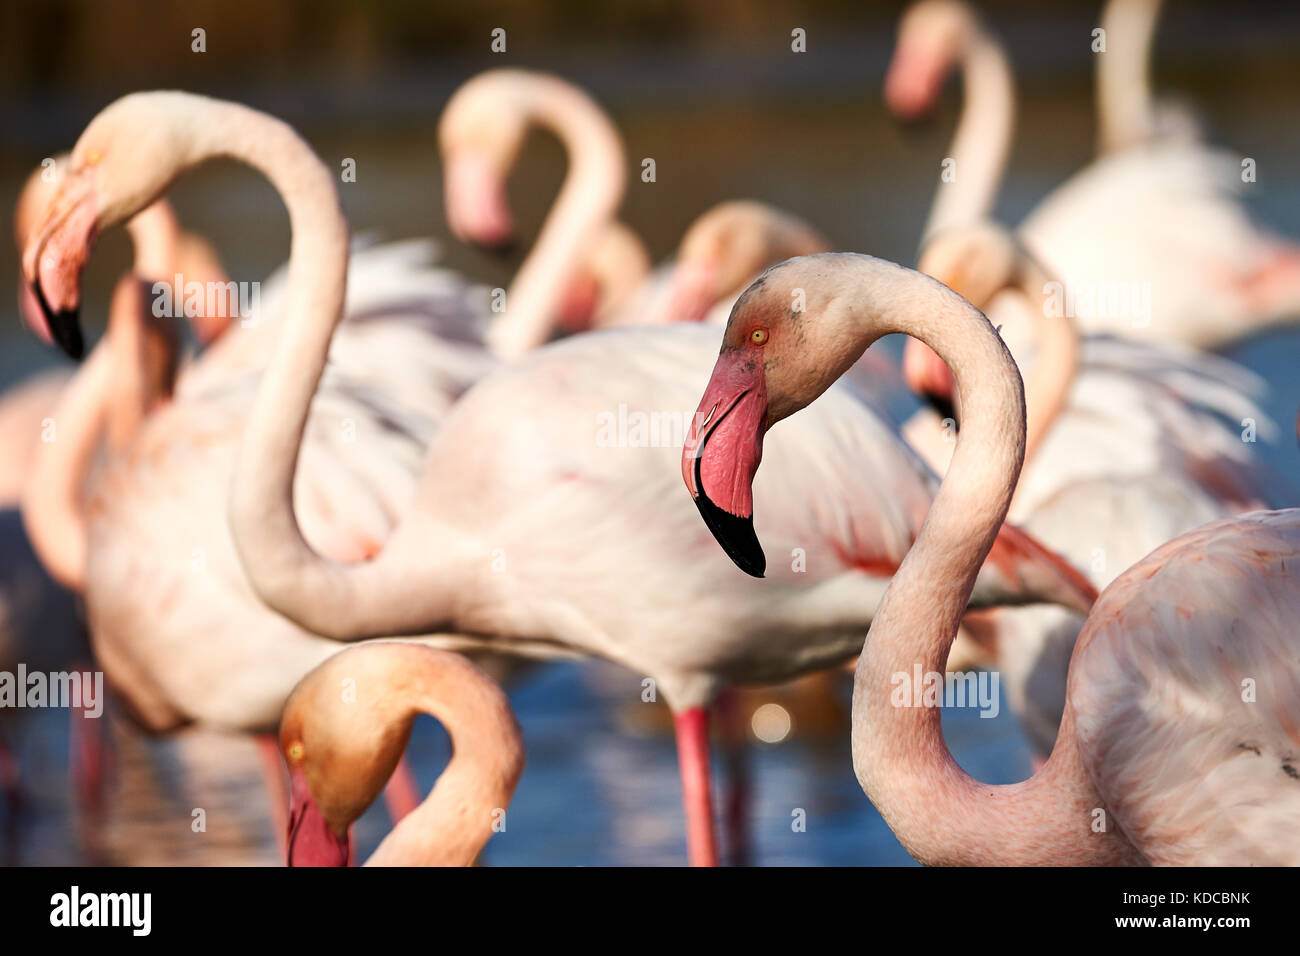 Closeup of greater Flamingo in between other flamingos - Stock Image